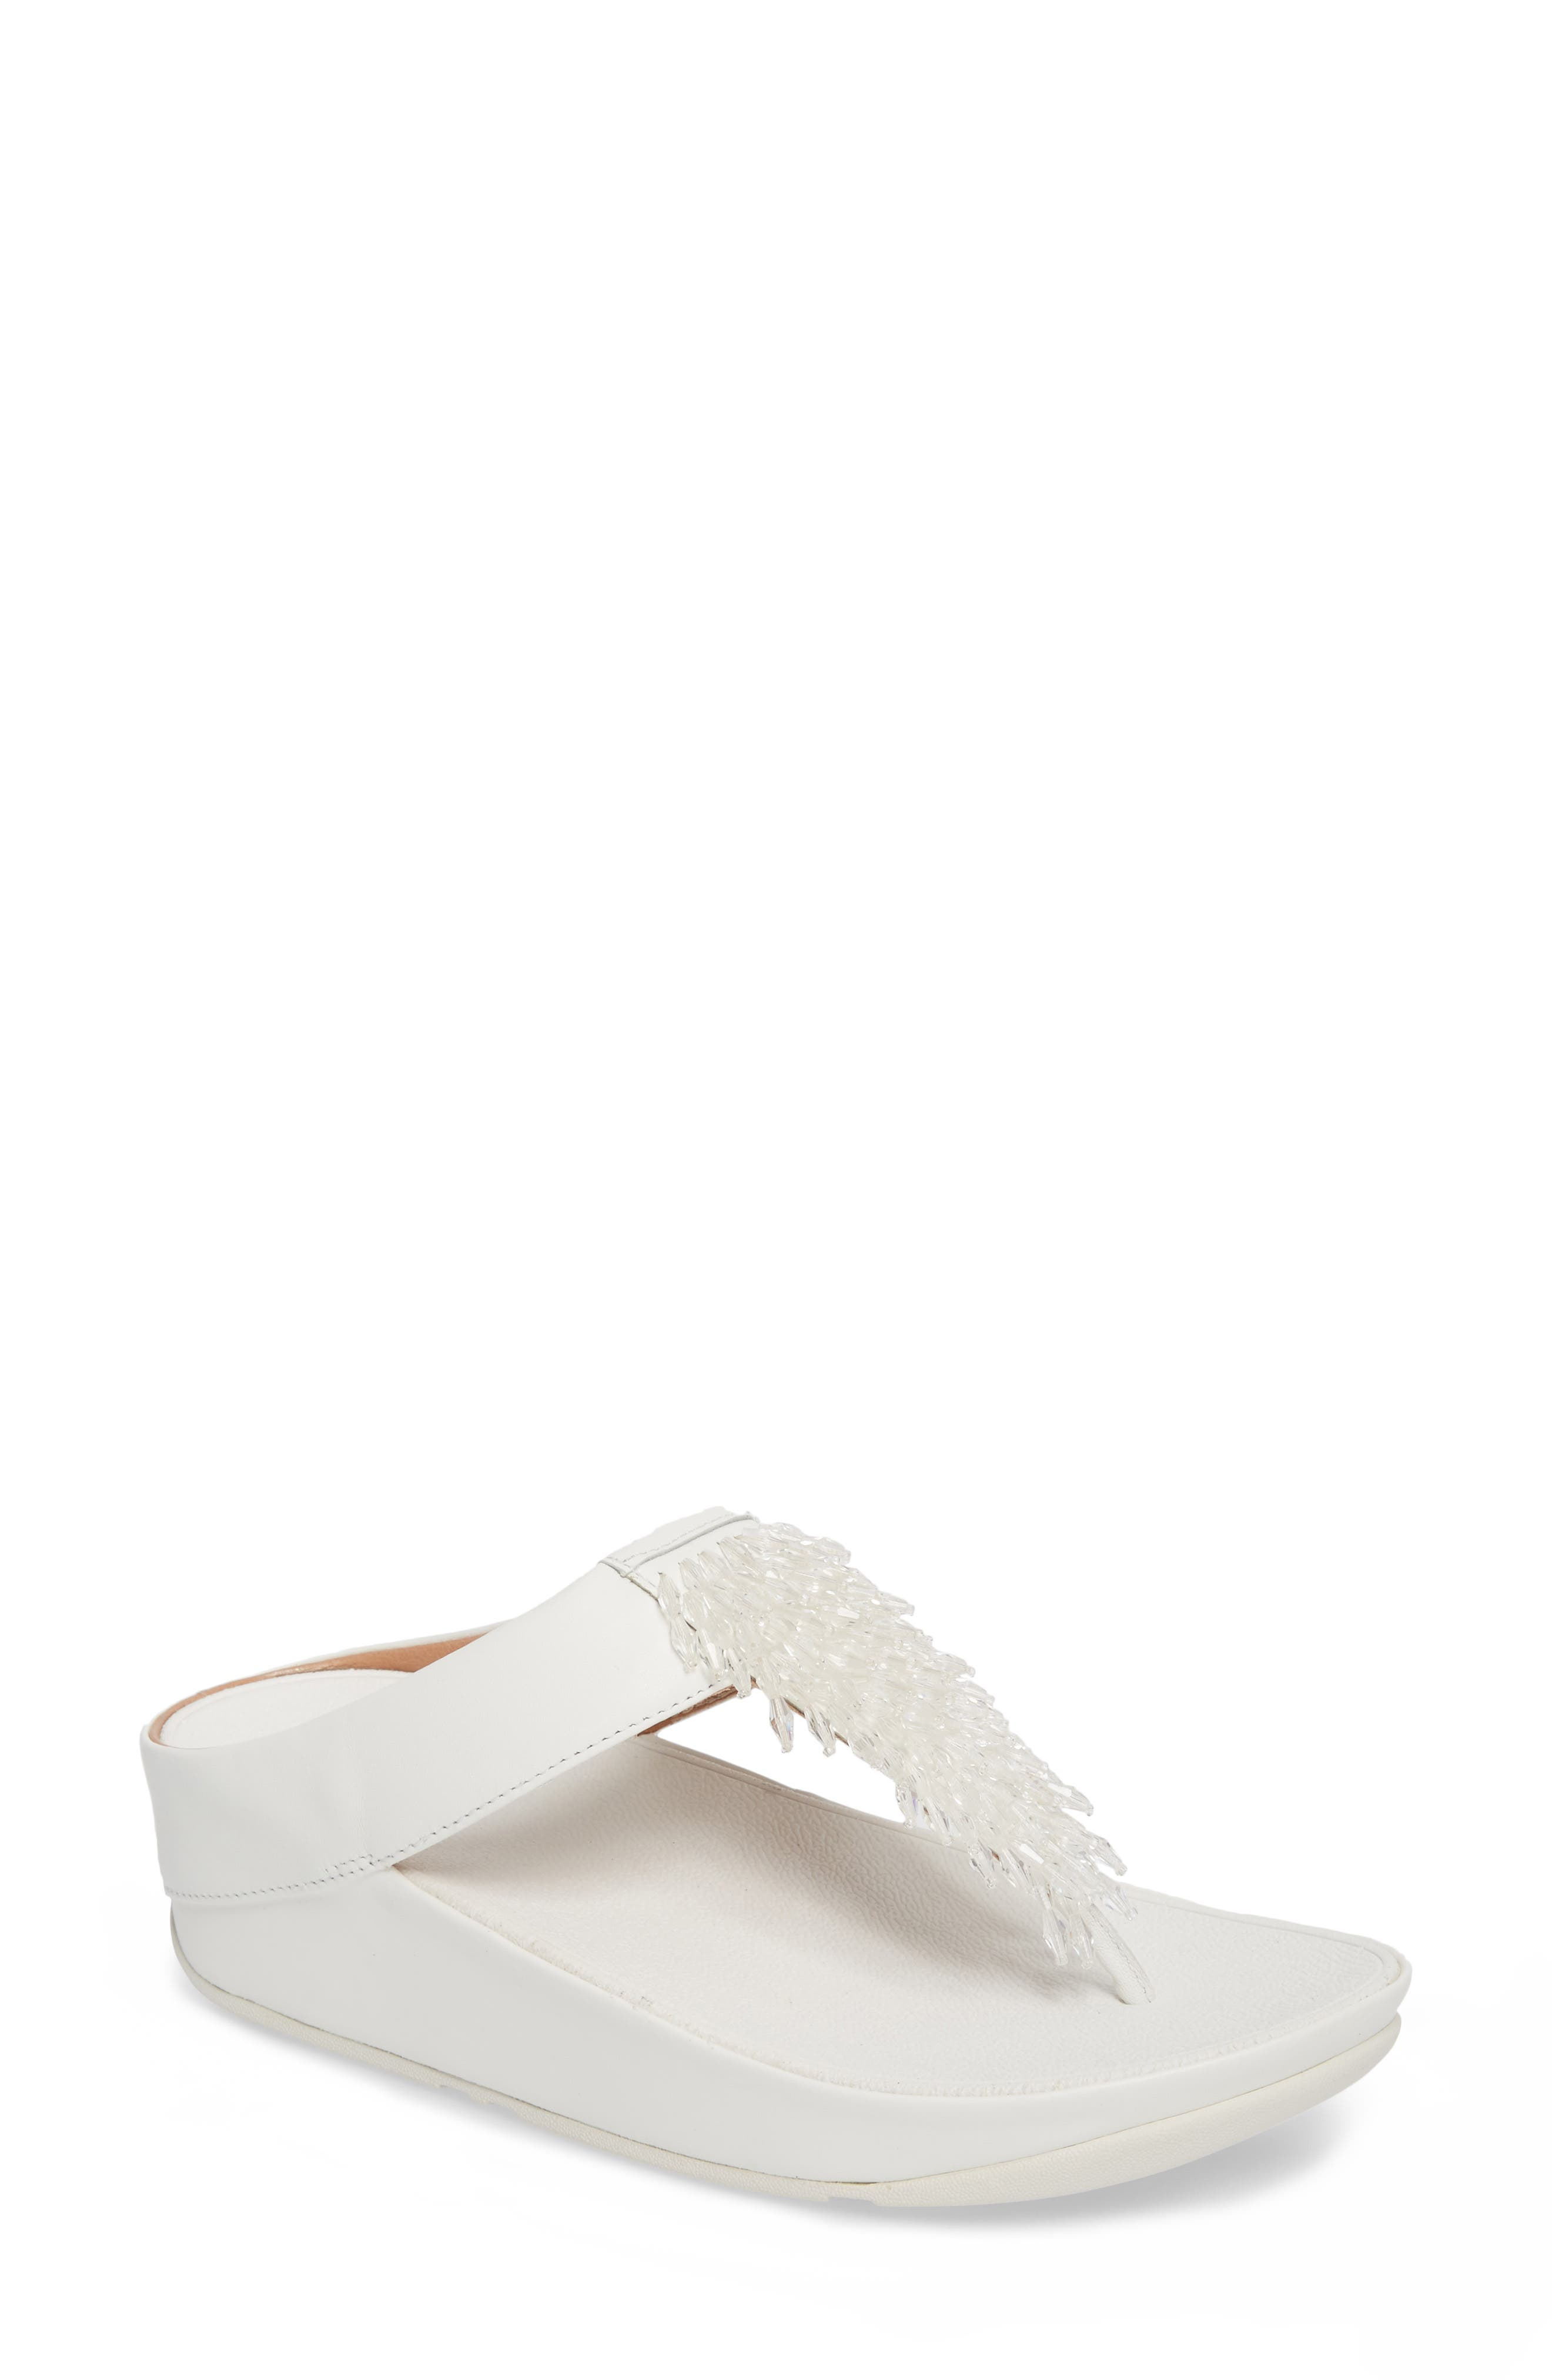 FITFLOP Rumba Sandal, Main, color, URBAN WHITE LEATHER